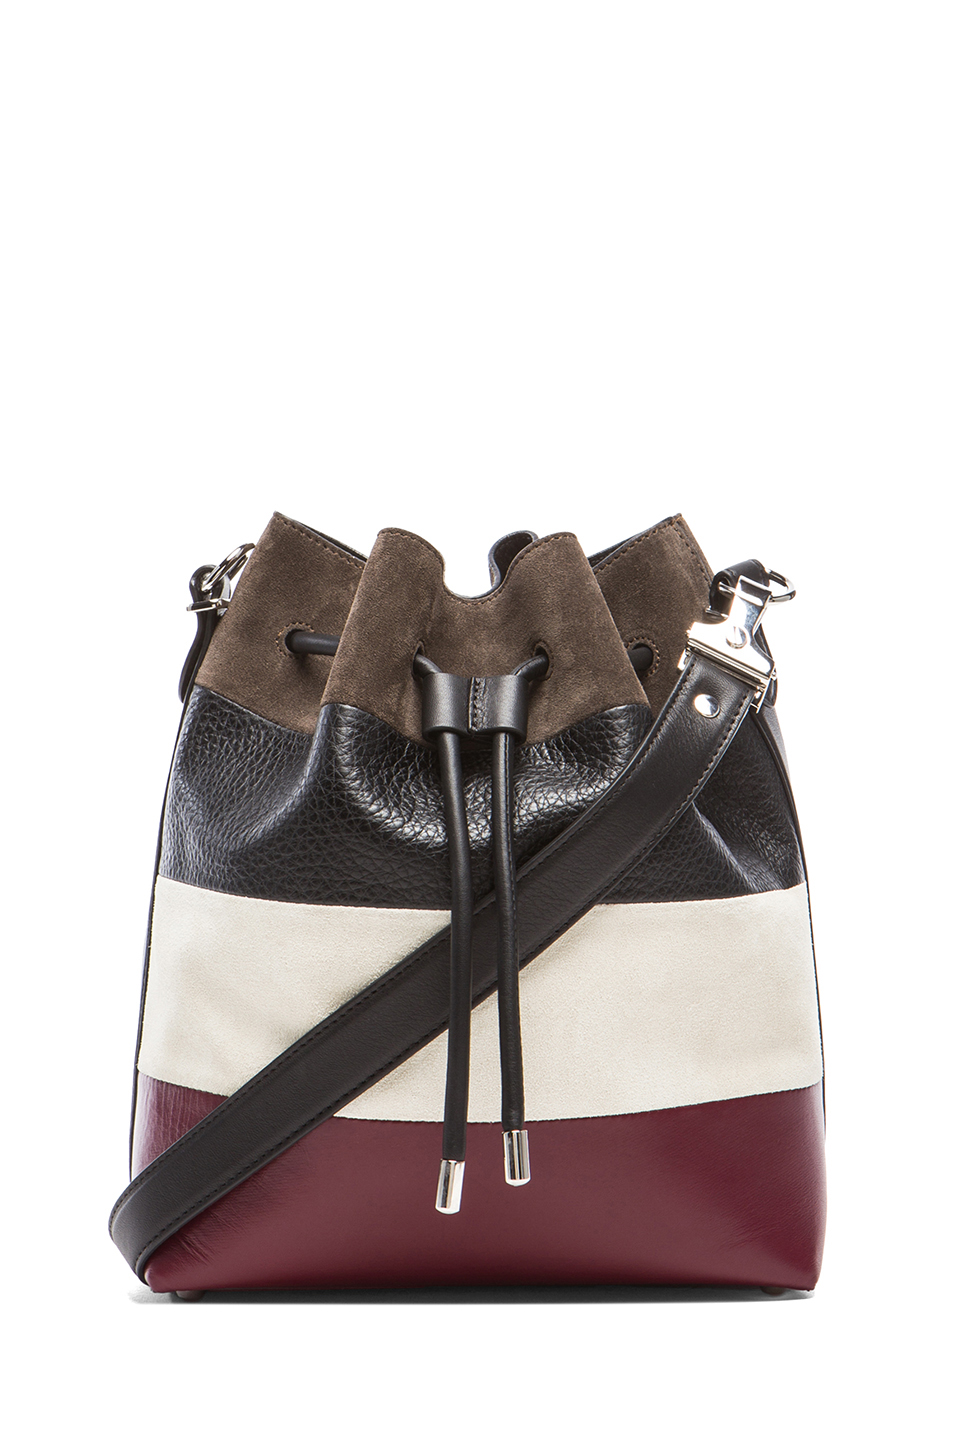 Proenza Schouler | Medium Suede & Leather Bucket Bag in Multi